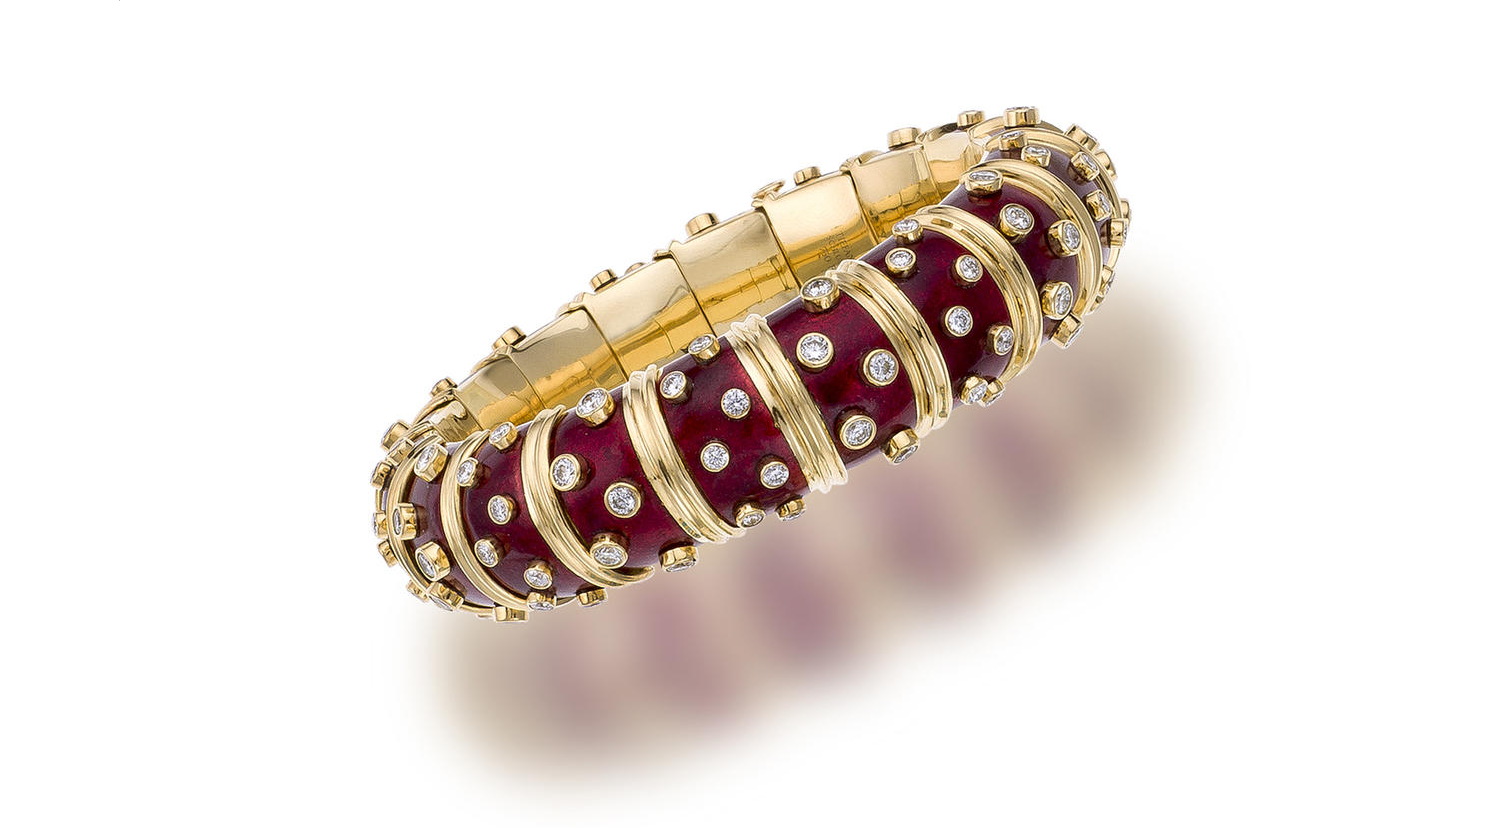 c2441f154 An enamel and diamond bangle bracelet, Schlumberger for Tiffany & Co.,  French Designed as a series of red pailloné enamel panels detailed with  bezel-set ...